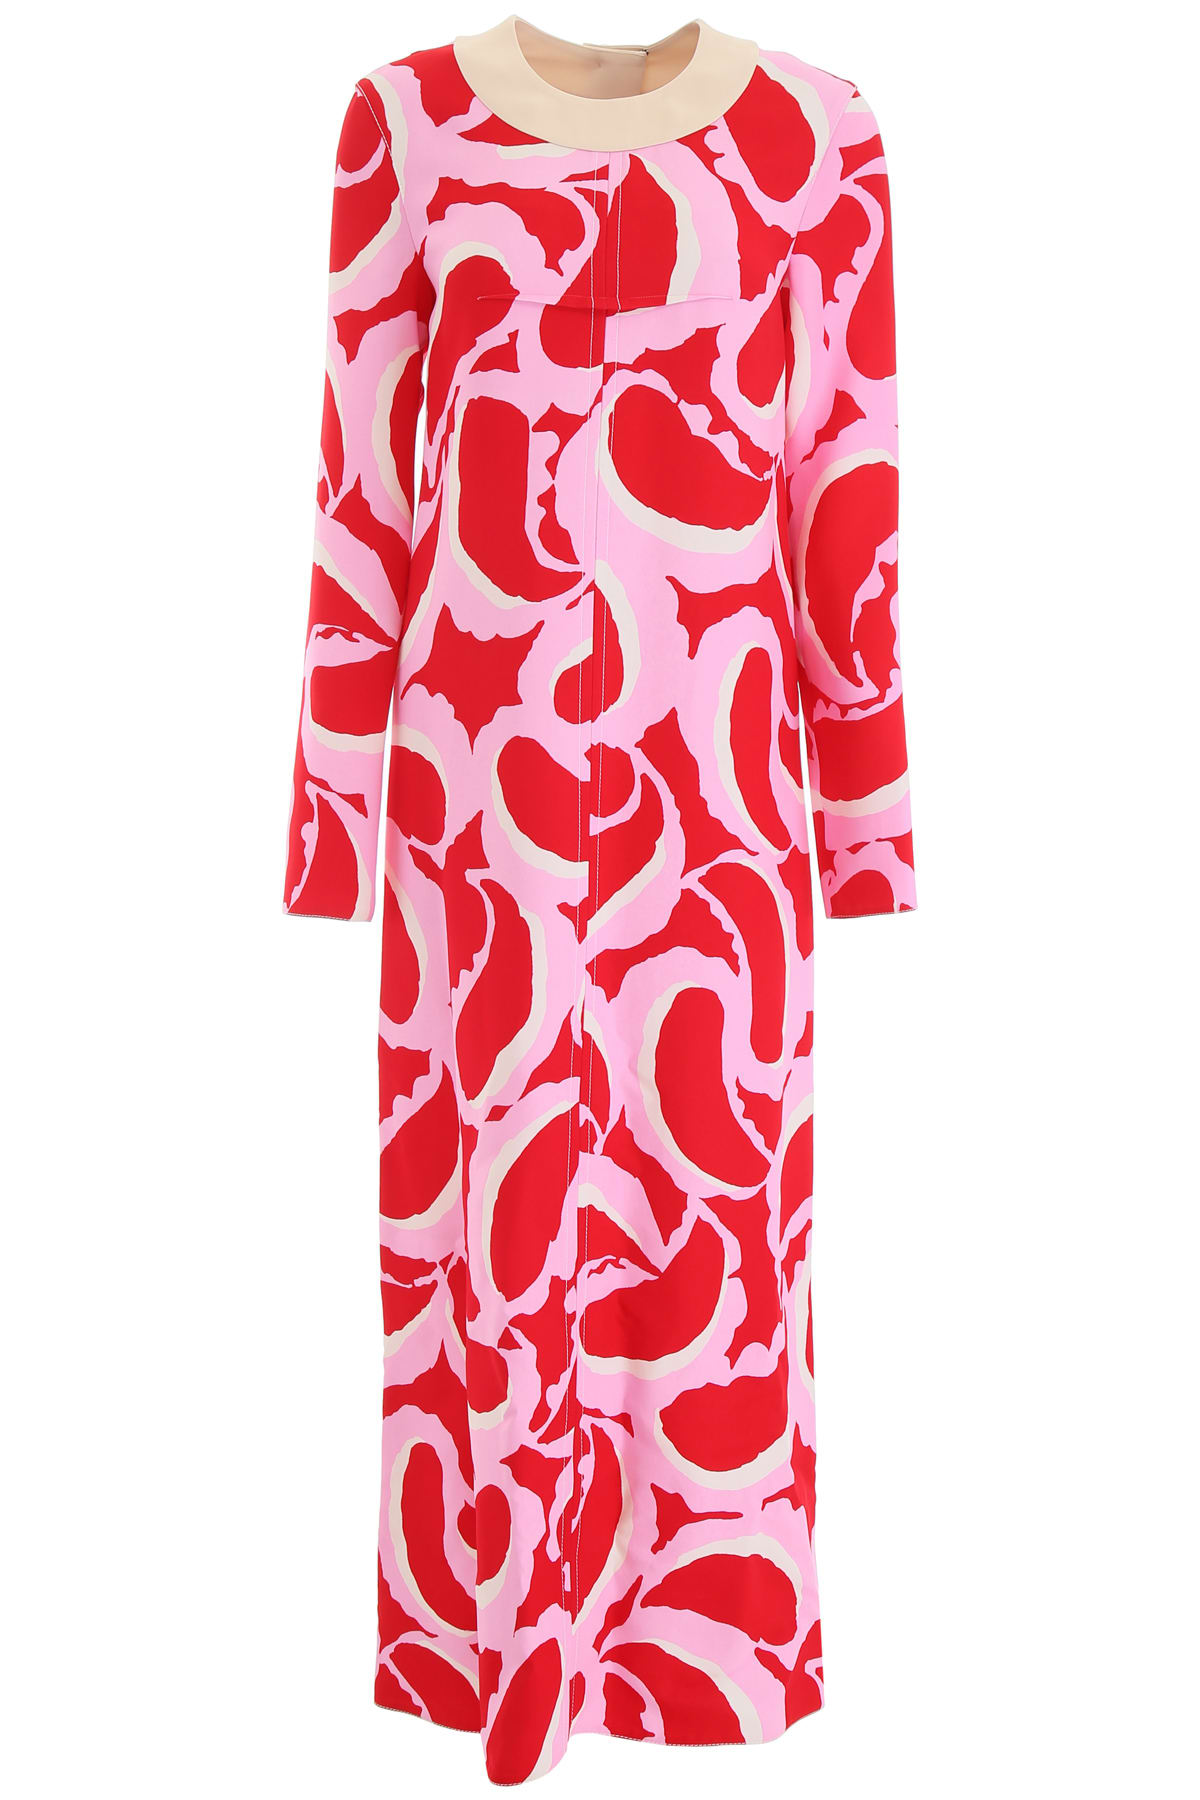 Marni Teardrop Dress